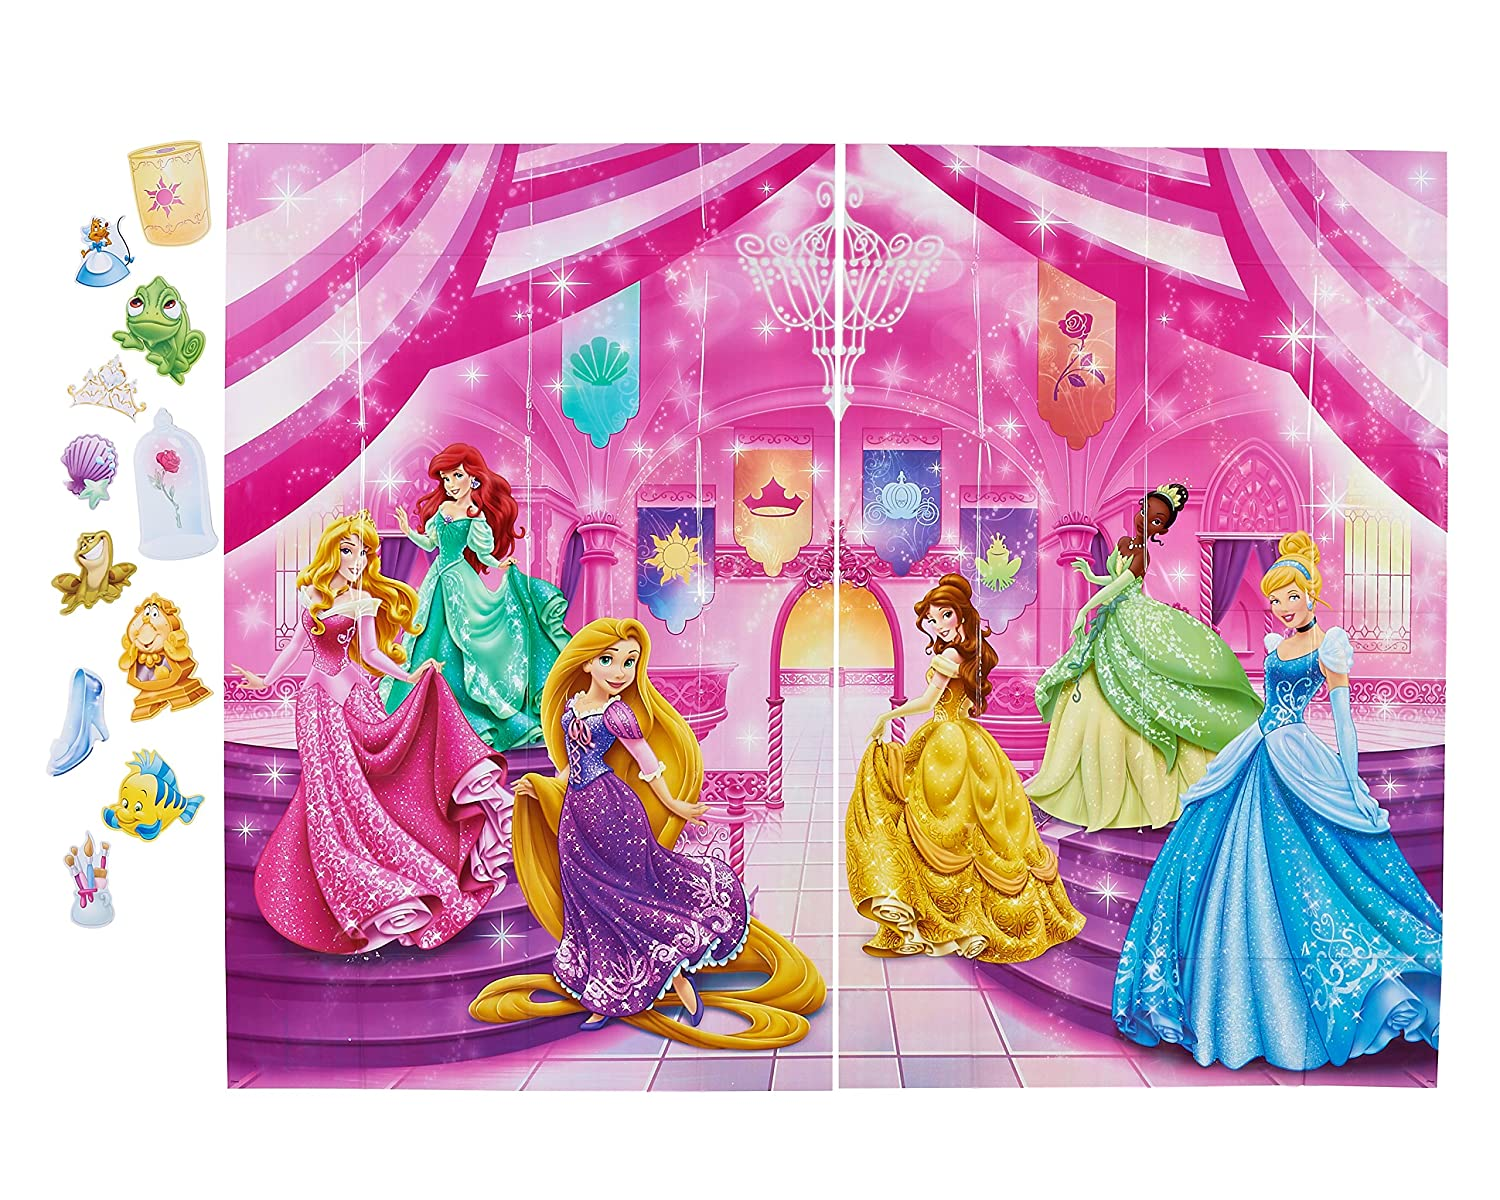 Beau Disney Princess Photo Kit, Backdrop And Props, Party Supplies 2 Piece 78 In  X 60 In Backdrop 11 Assorted Props Pretty Disney Princess Photo Backdrop ...